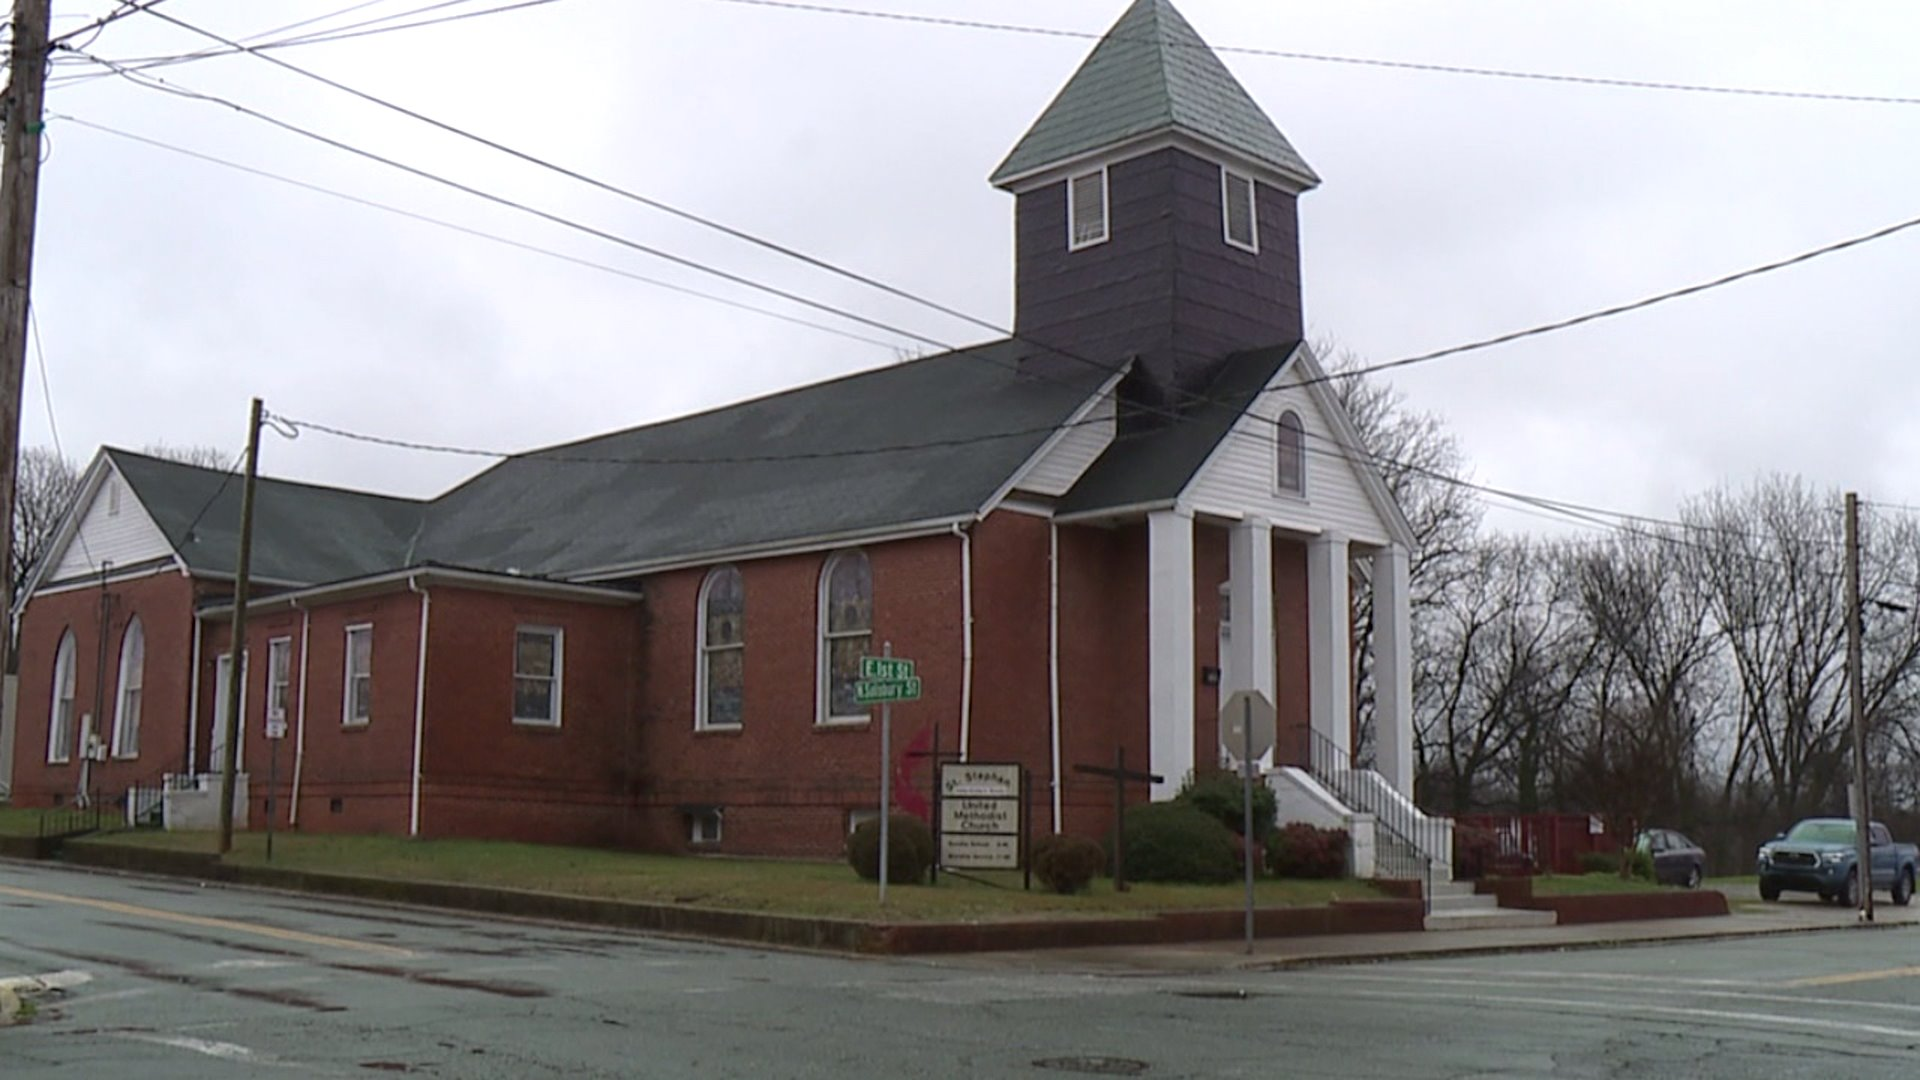 St. Stephen United Methodist Church is the oldest African-American congregation in Davidson County